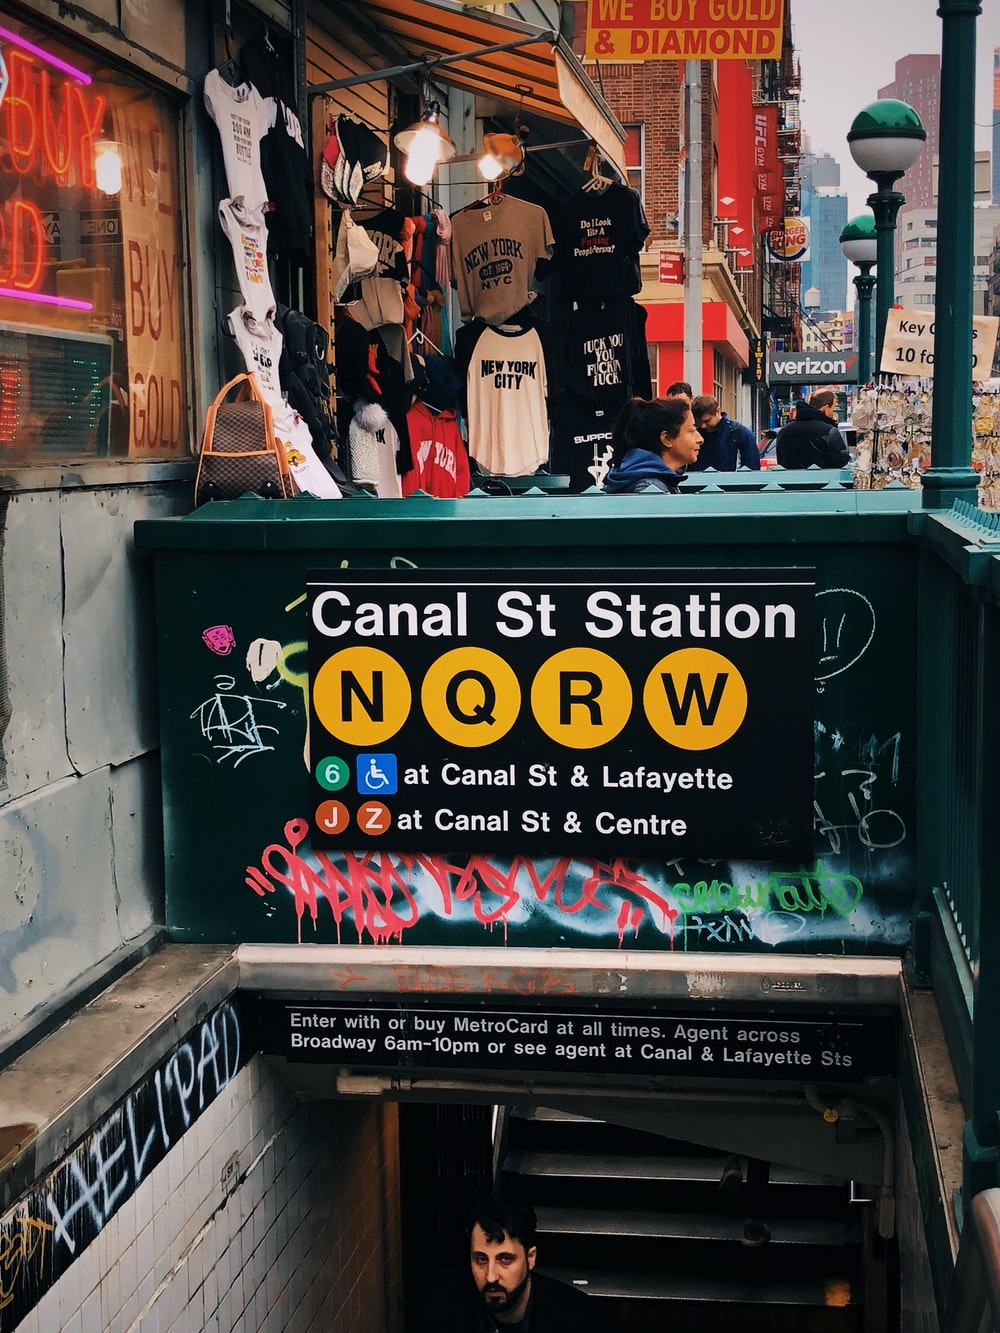 Canal St Station, New York